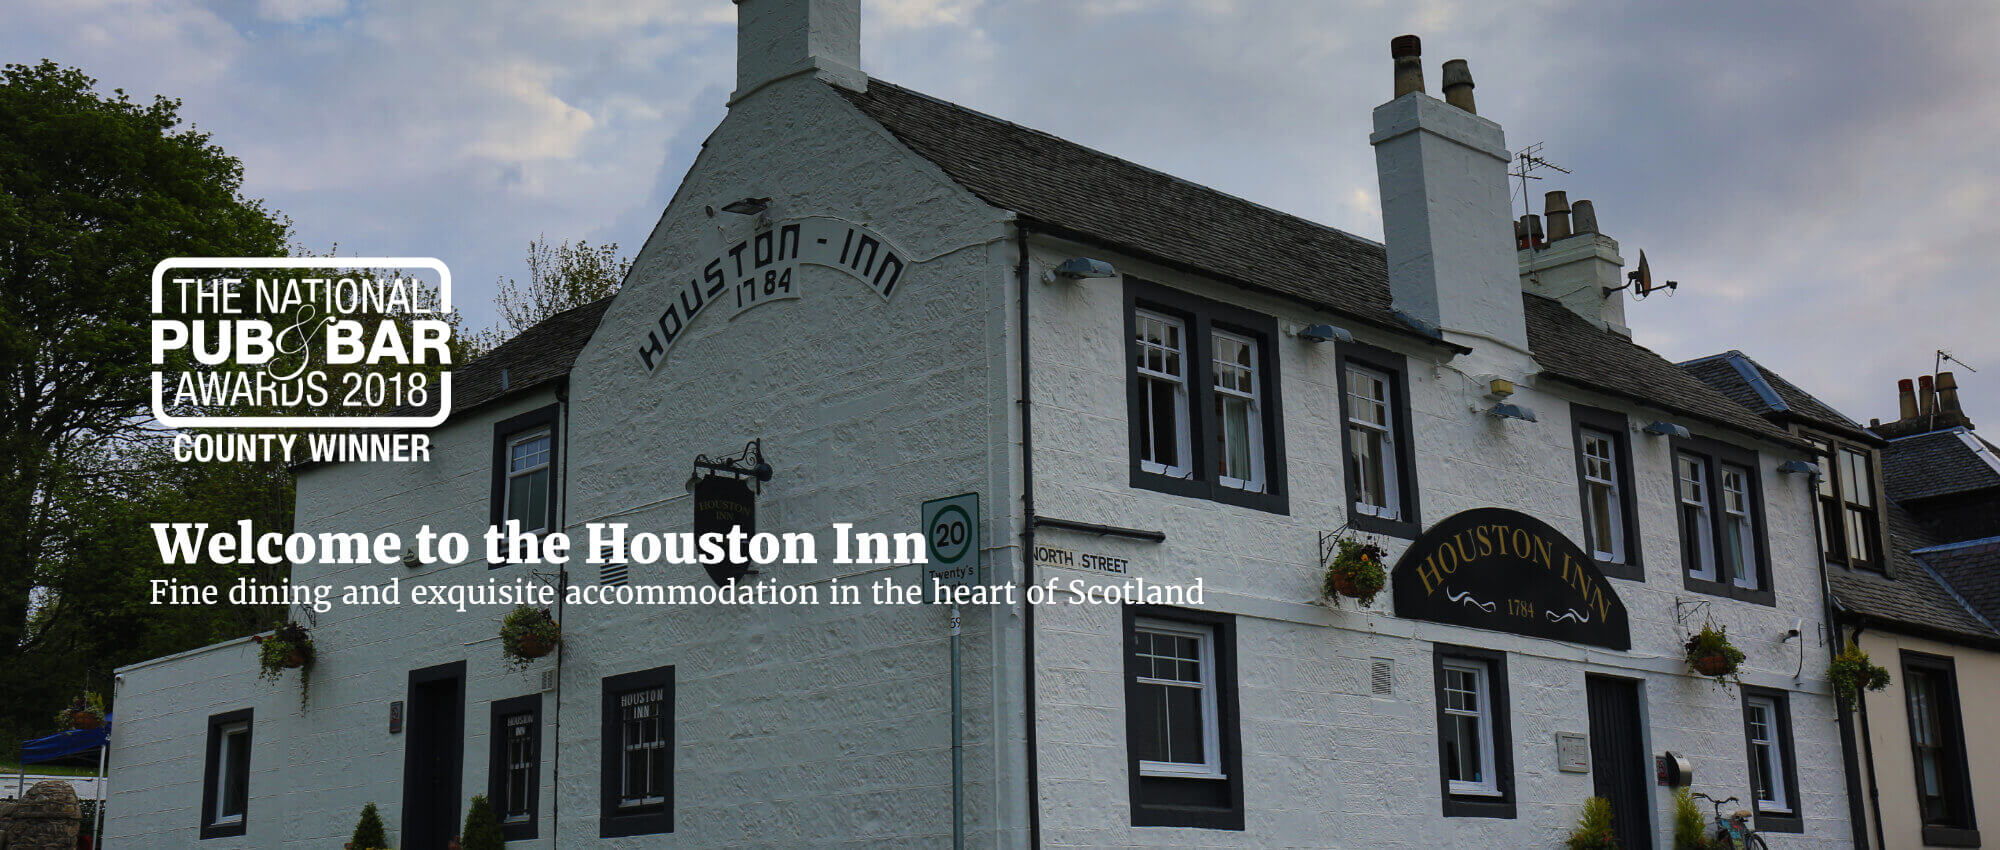 Welcome to the Houston Inn